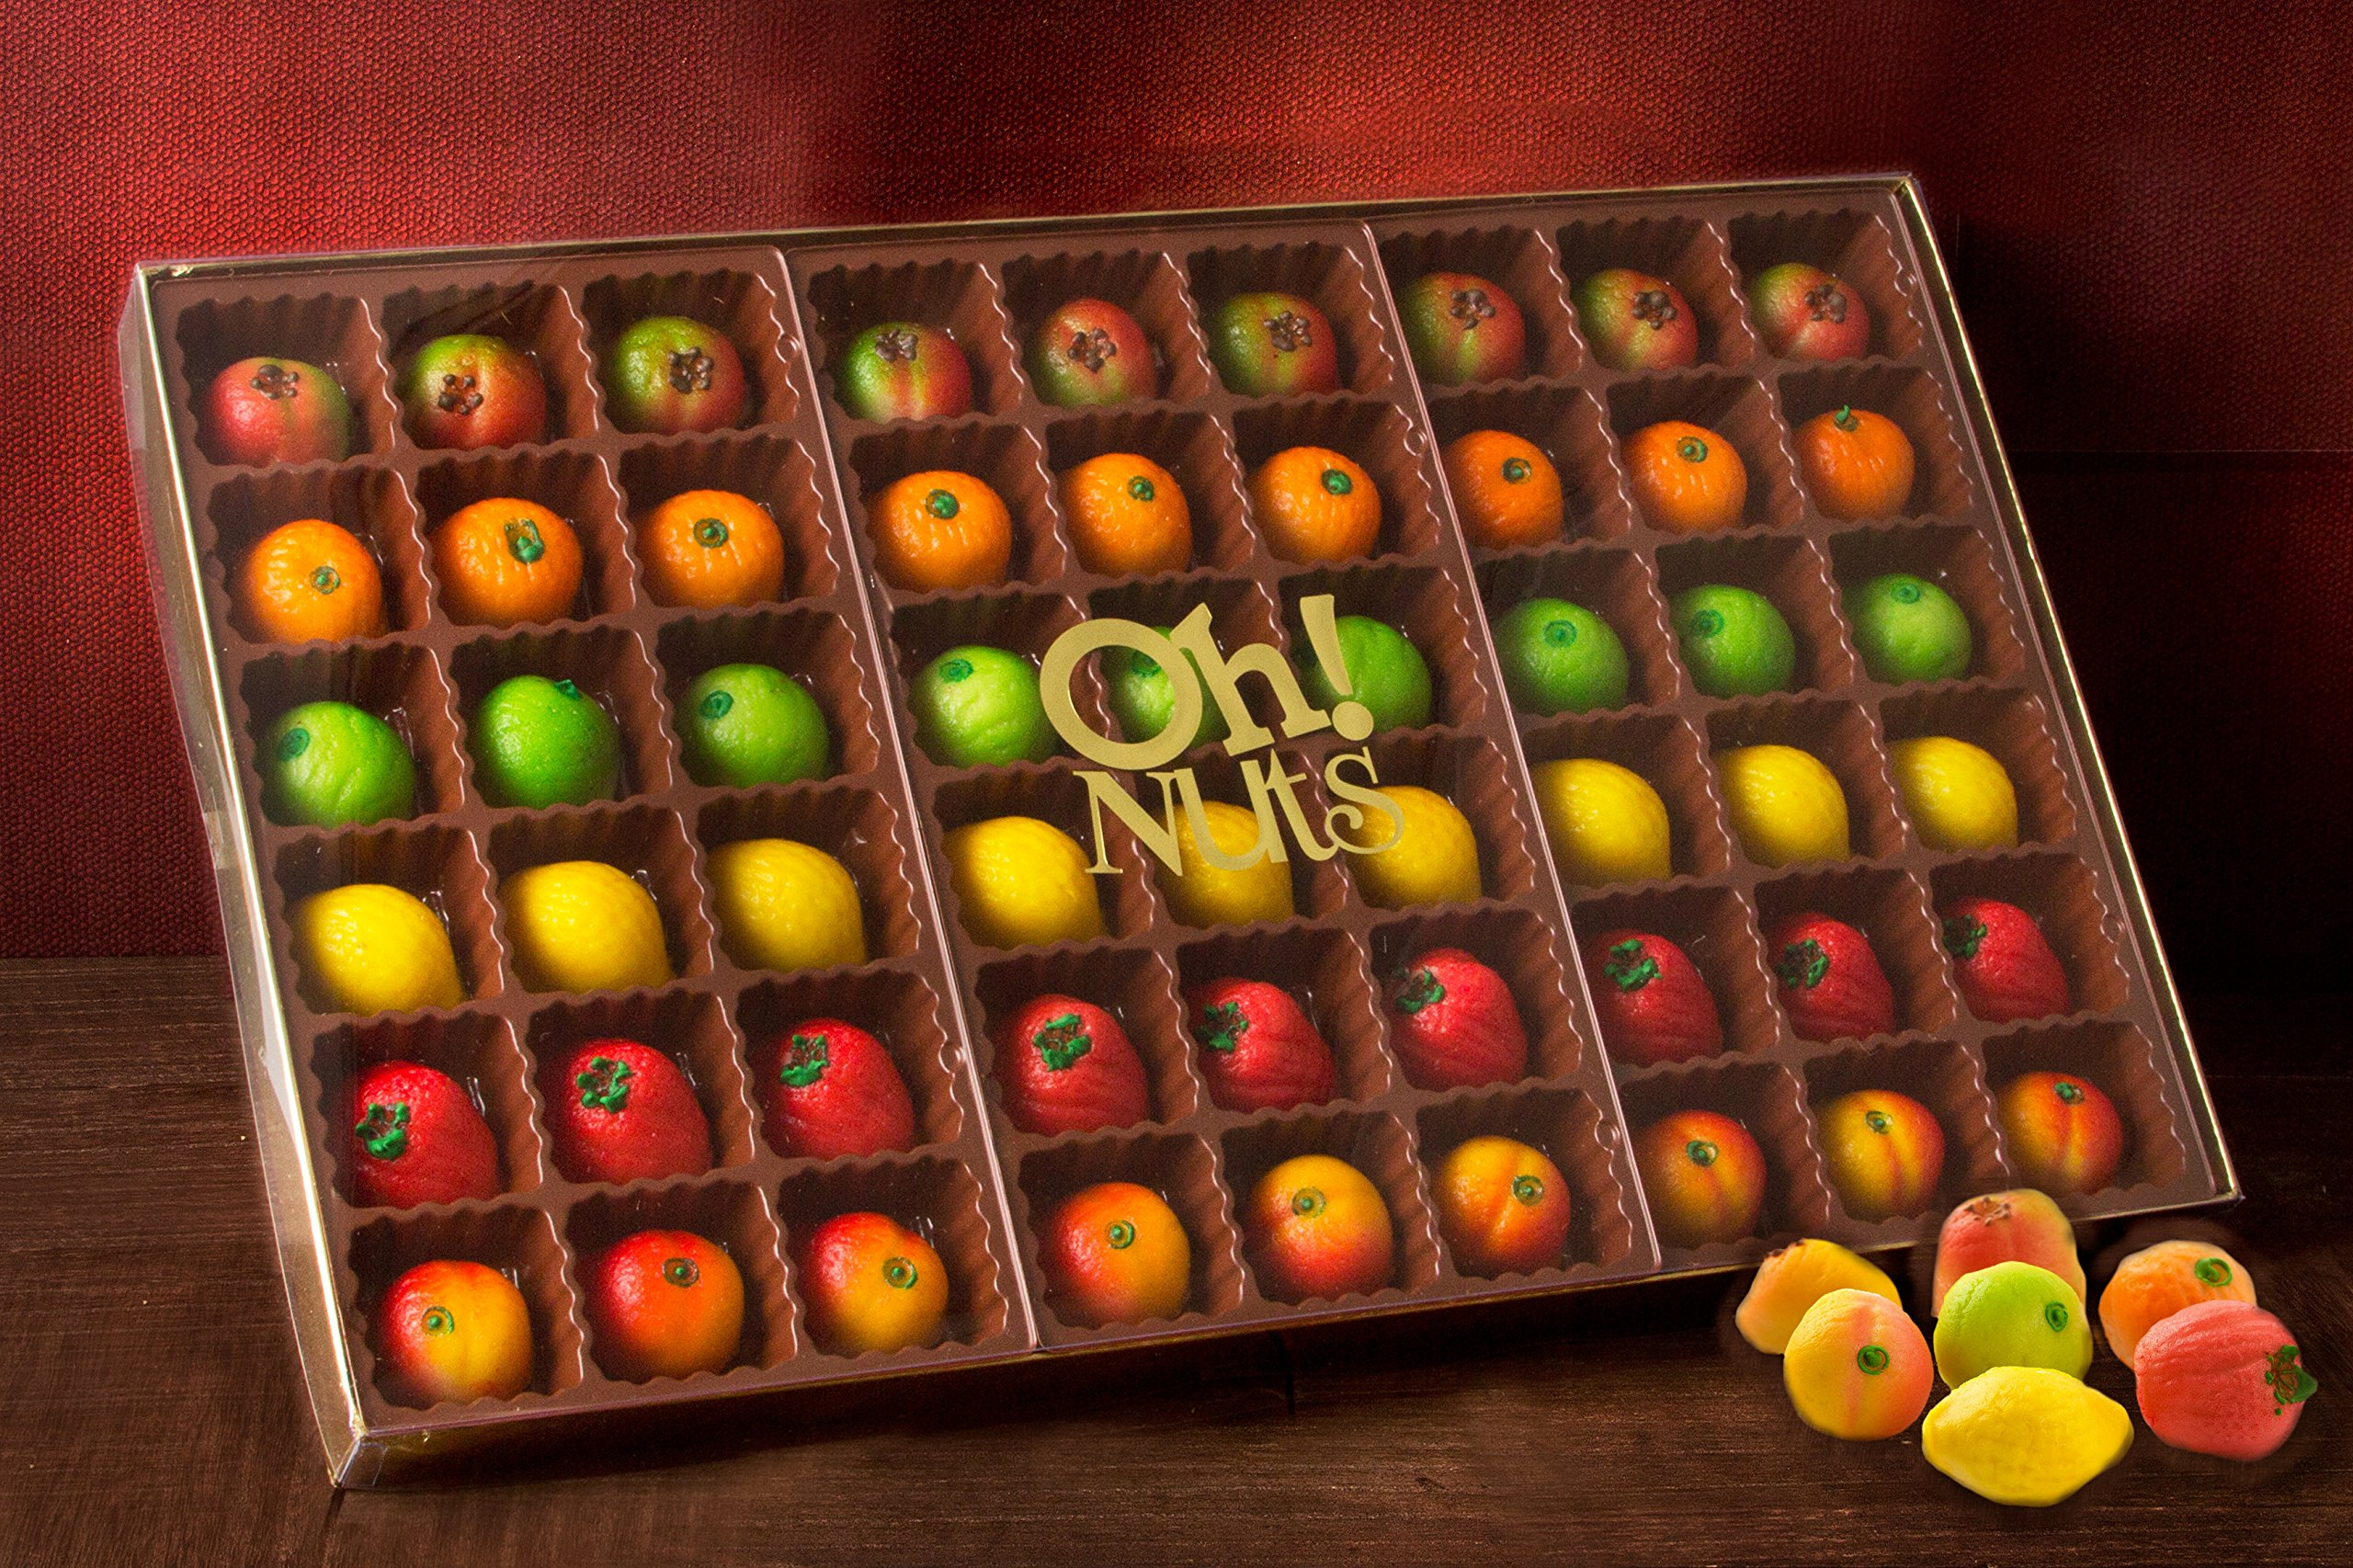 Oh! Nuts® Marzipan Candy Fruits, Holiday Gourmet Marzipans Tray in an Elegant Gift Box, Unique Basket for Women & Men Alike, Send it For Thanksgiving, Christmas Gourmet Food Idea (54 Piece) by Oh! Nuts® (Image #5)